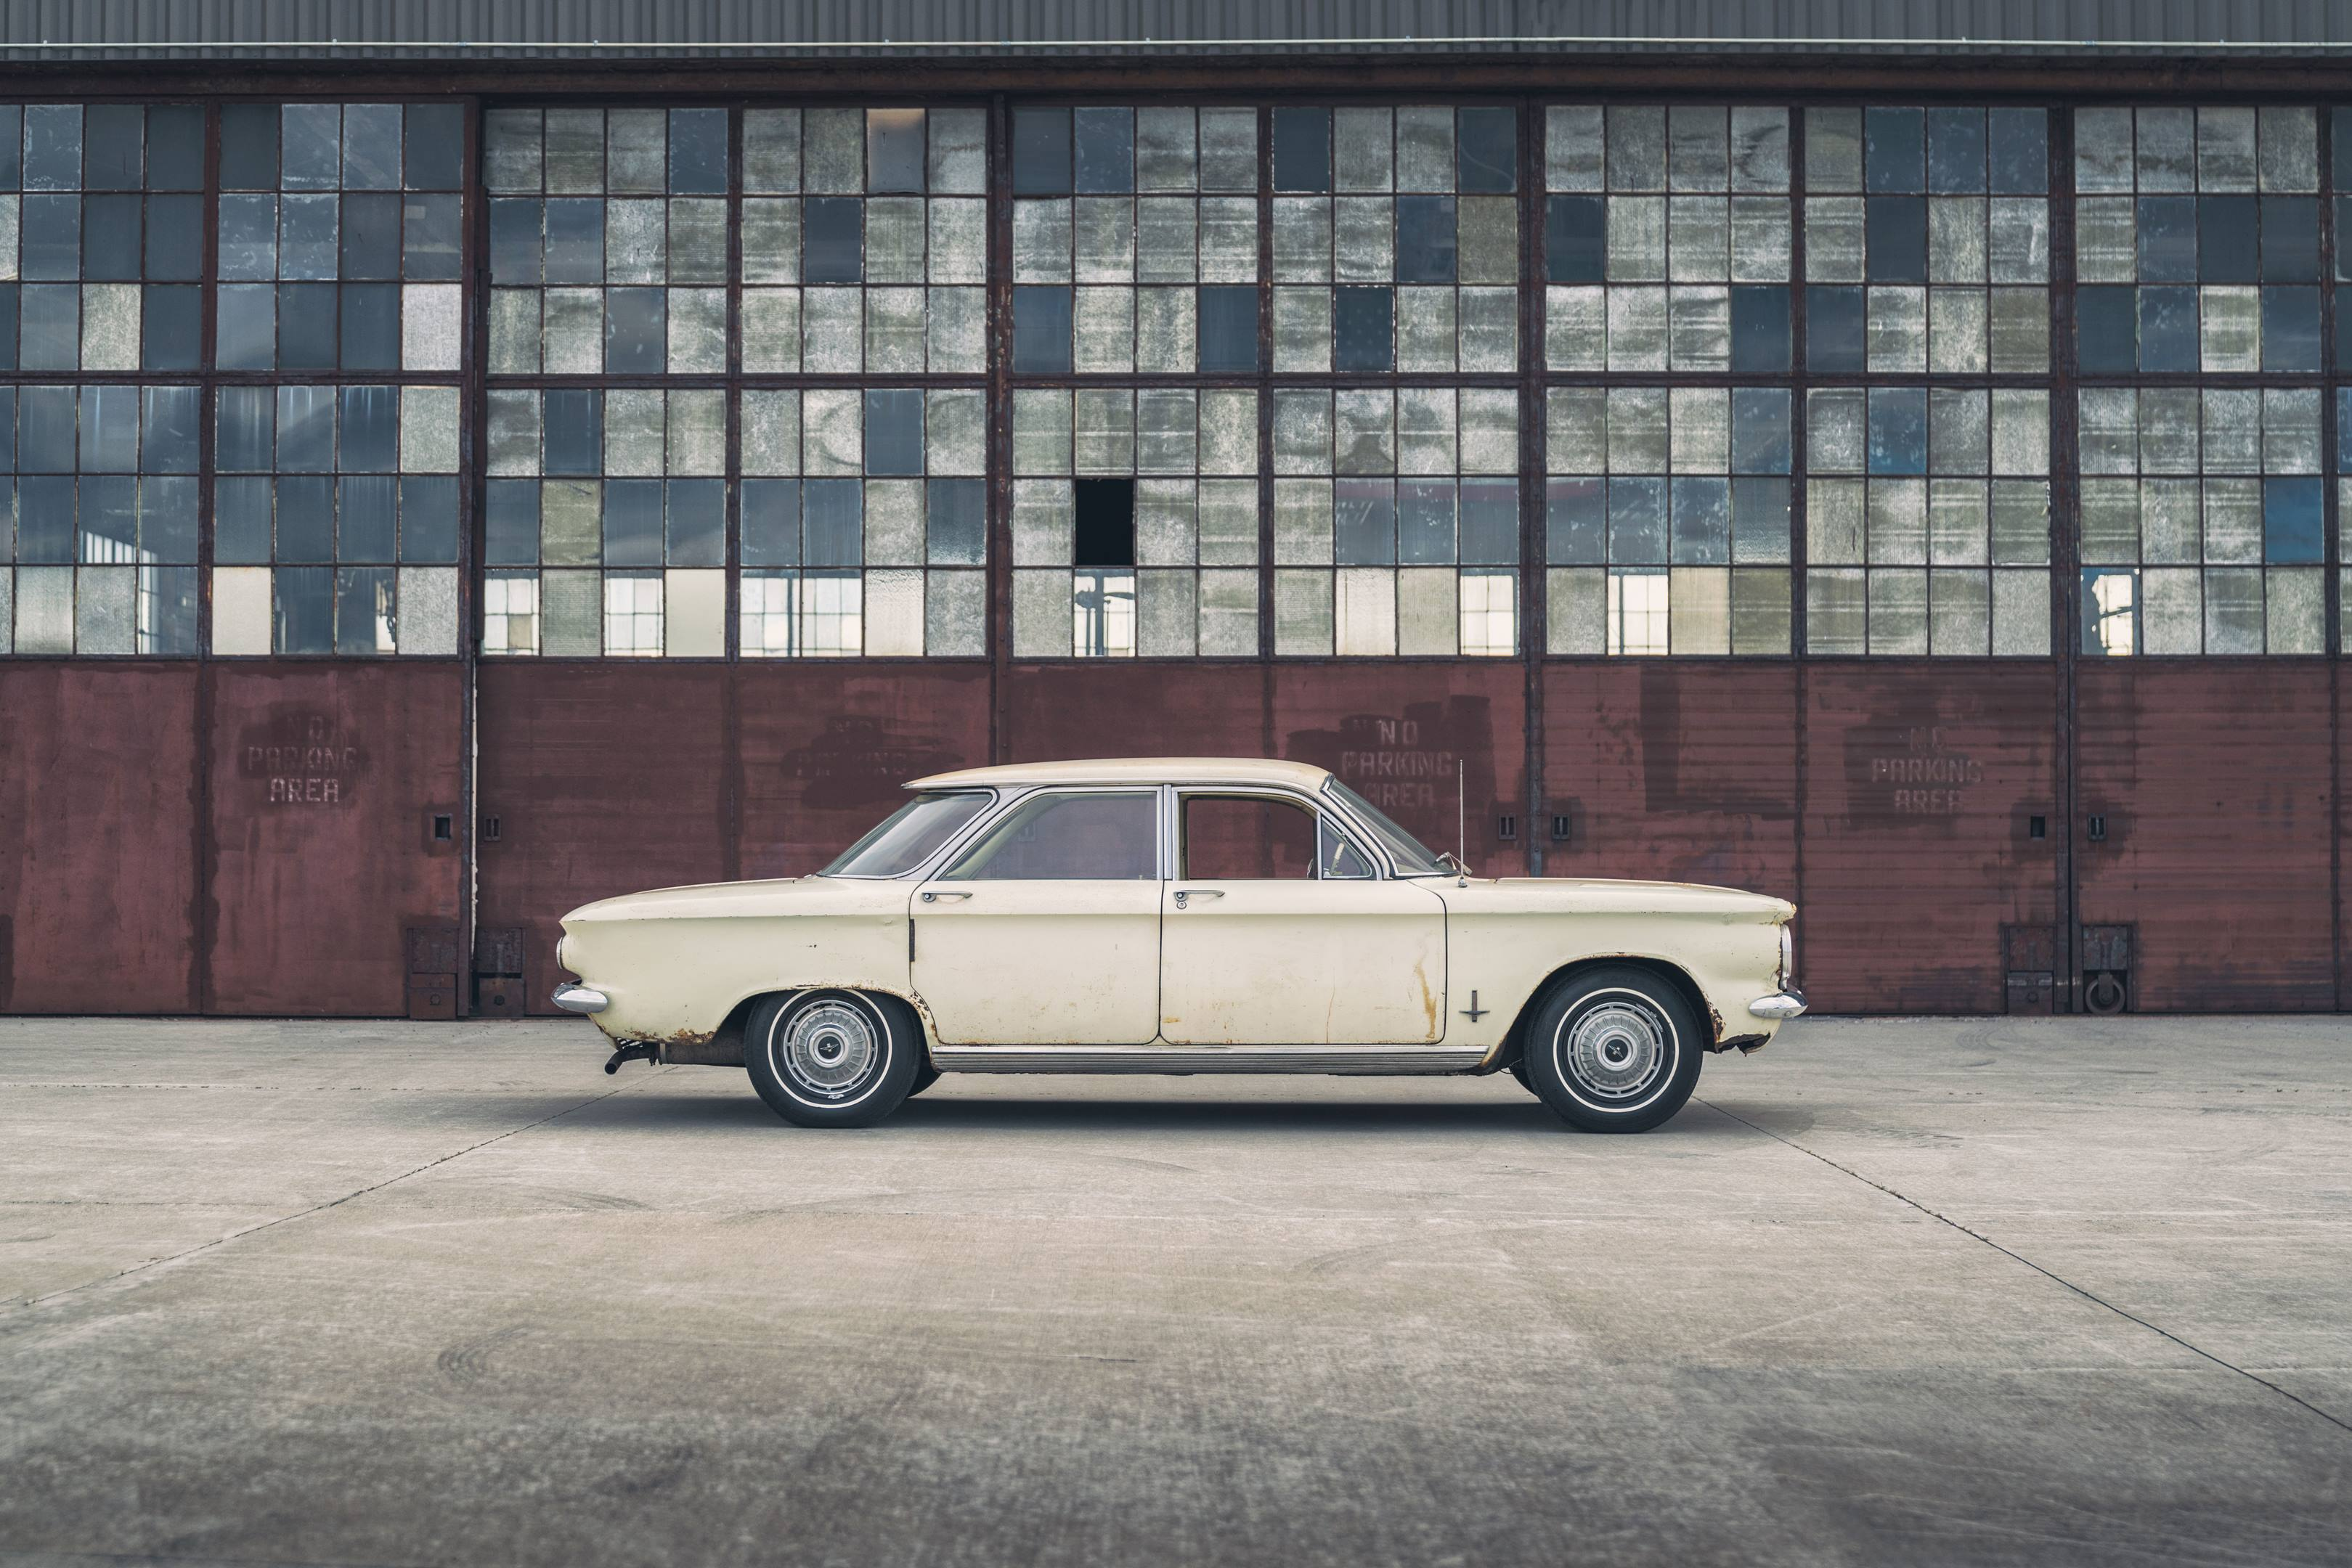 Ralph Nader's 1962 Chevy Corvair Monza